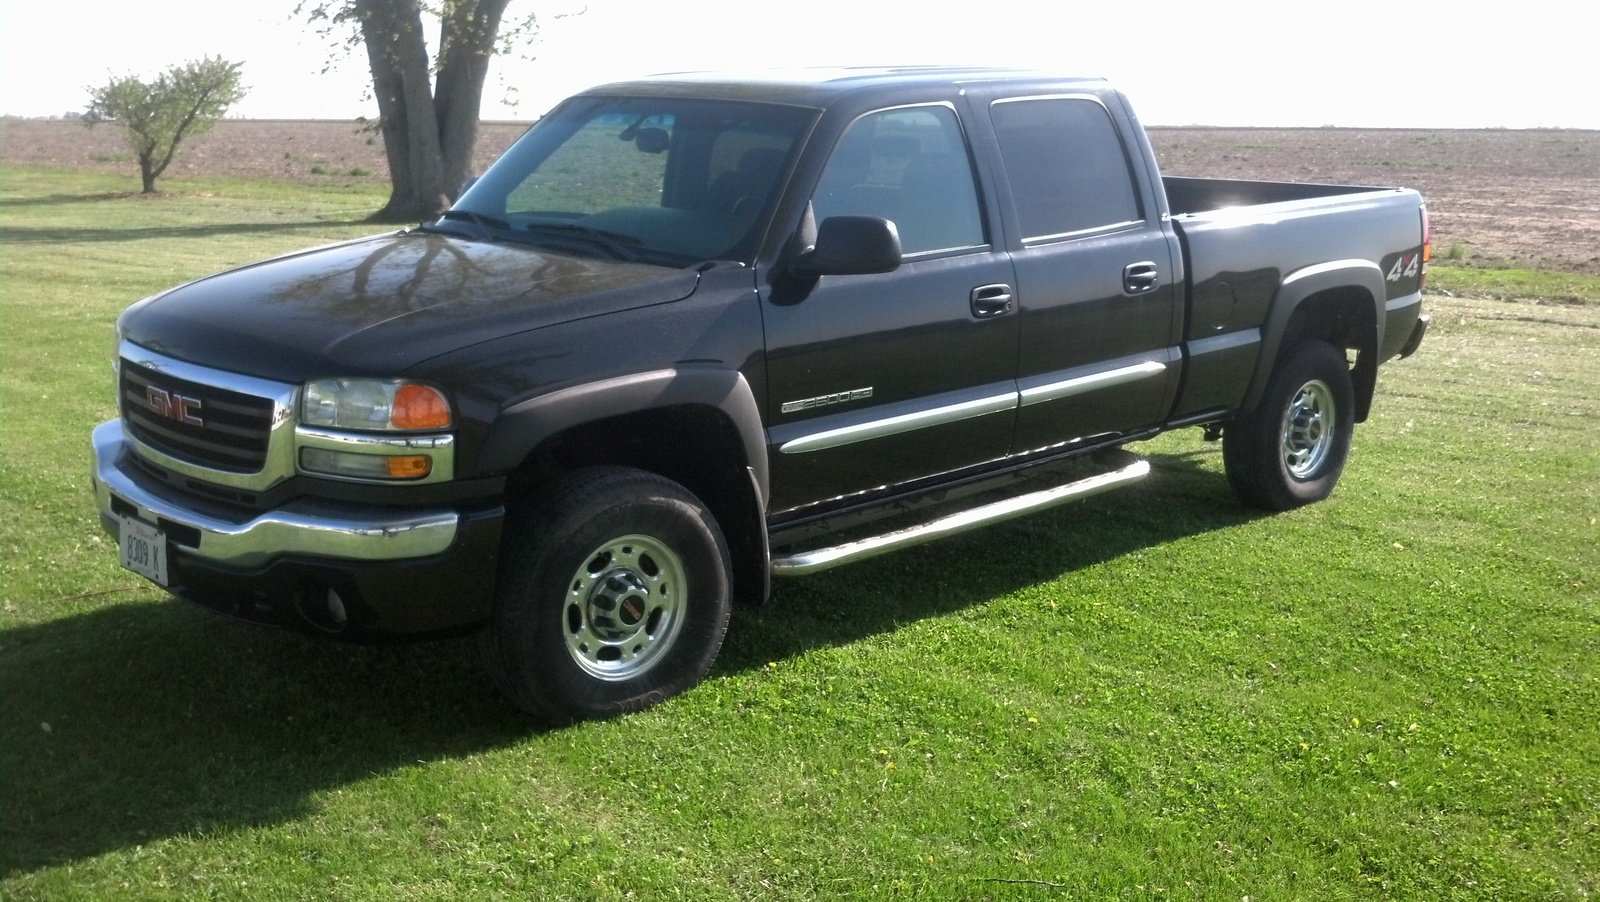 2001 gmc sierra 2500 specifications cargurus. Black Bedroom Furniture Sets. Home Design Ideas